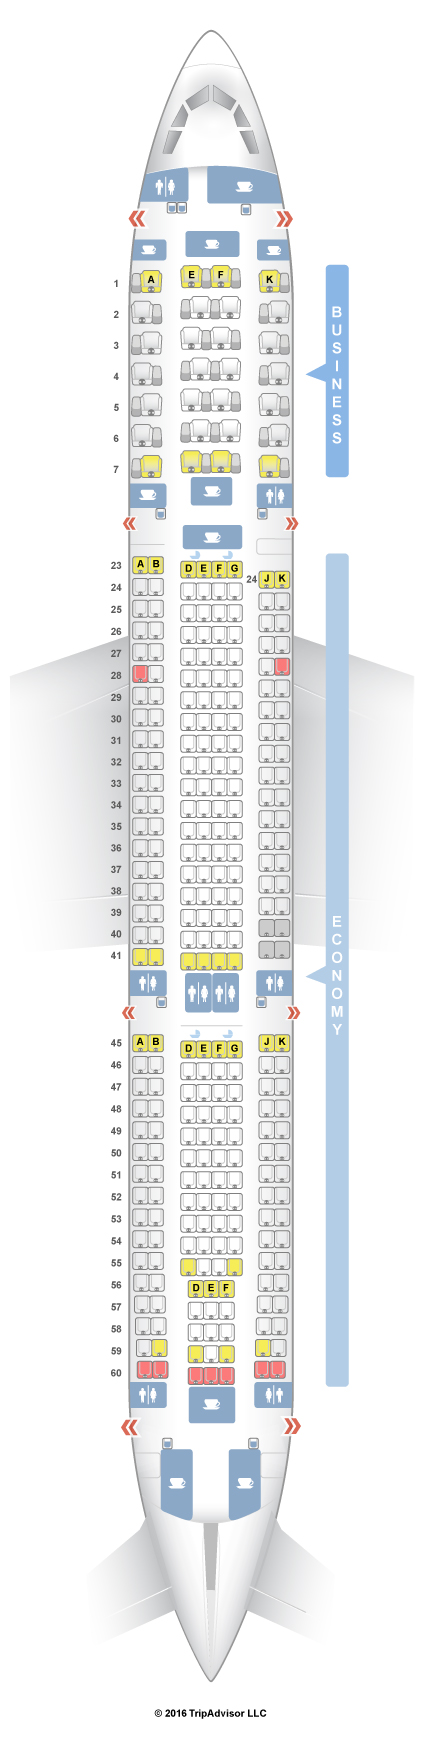 Qantas Airbus A380 Premium Economy Seating Plan - Best Description on